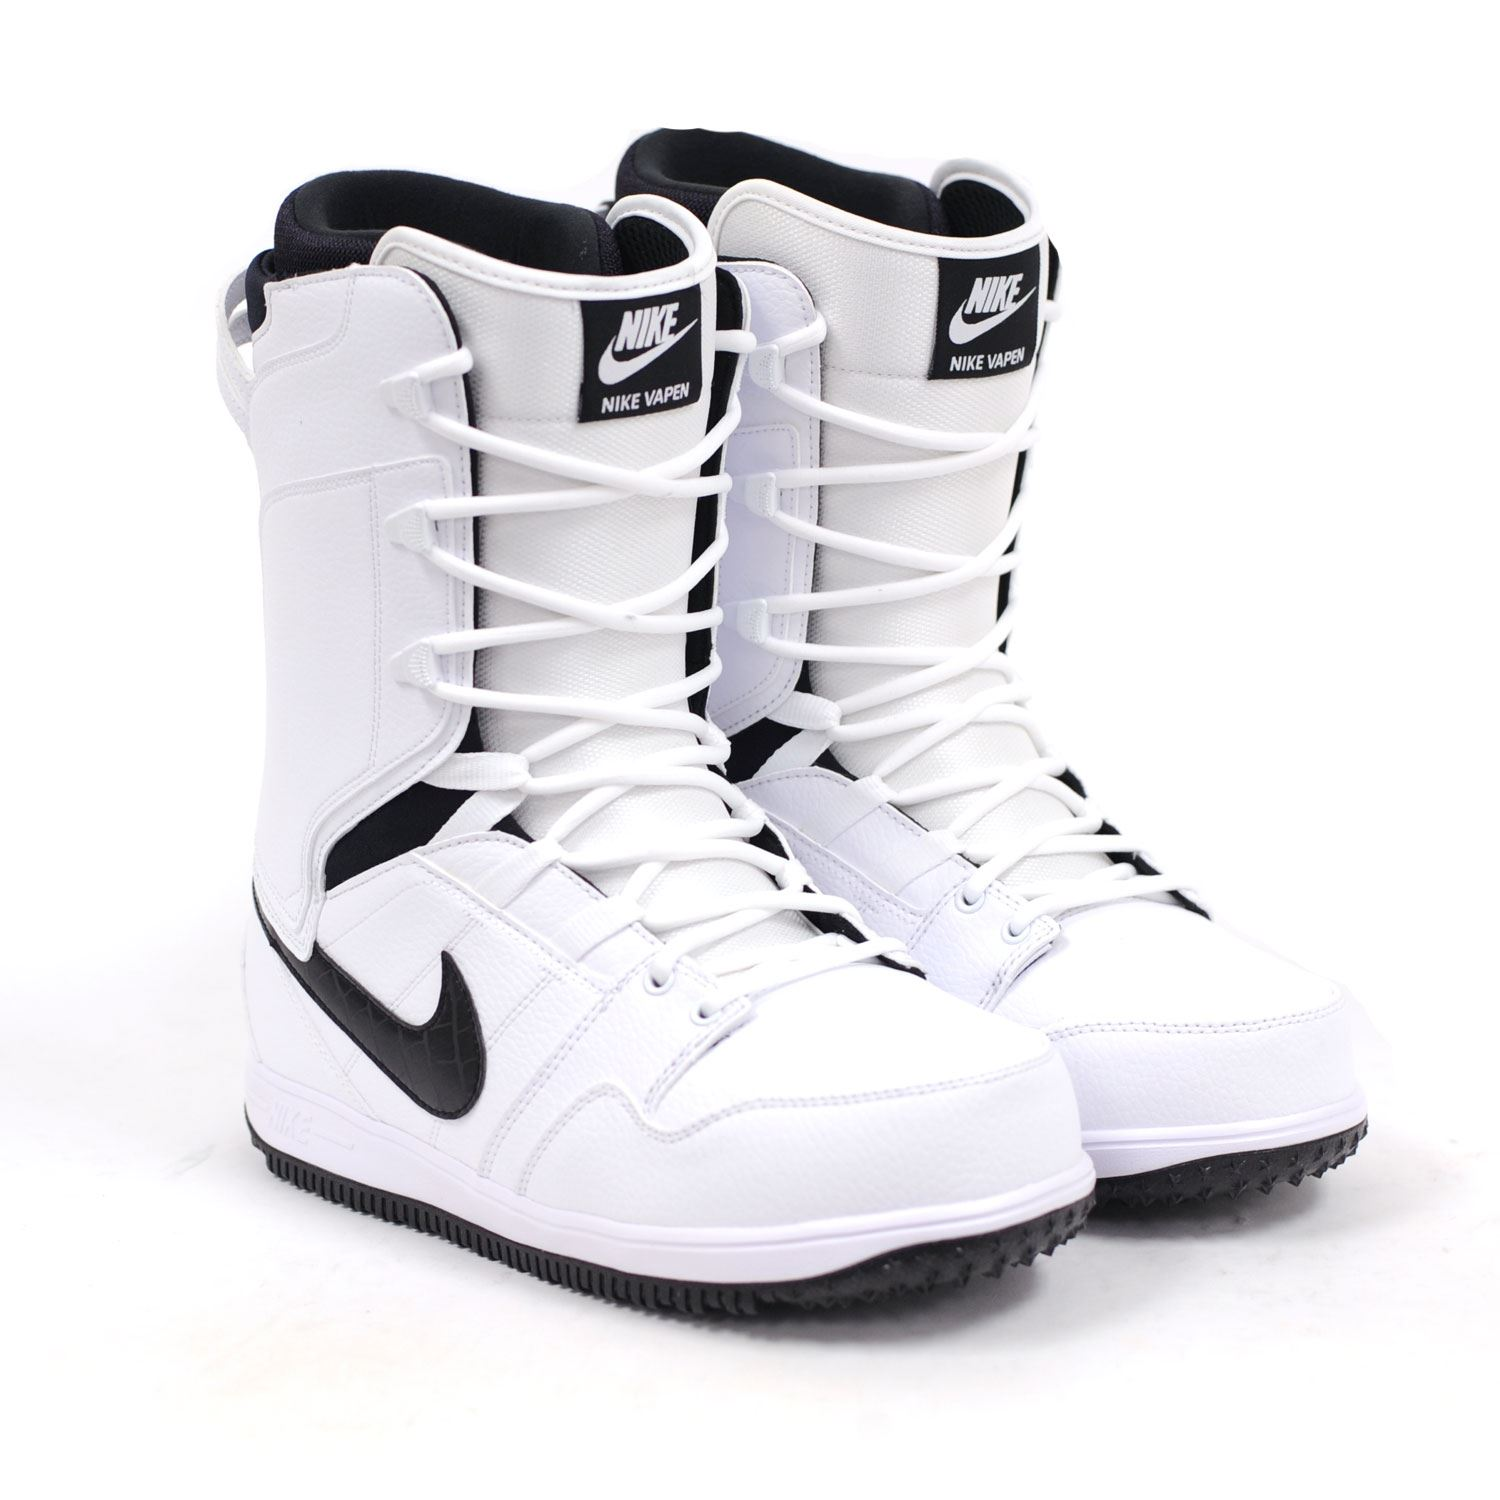 Beautiful The Nike Vapen Womens Snowboard Boots Are Inspired By The Mogan Mid 2 For Recognizable Style On The Mountain A Lacing Harness Creates A Snug, Customized Fit For Stability And A Lockedin Feel During Every Run